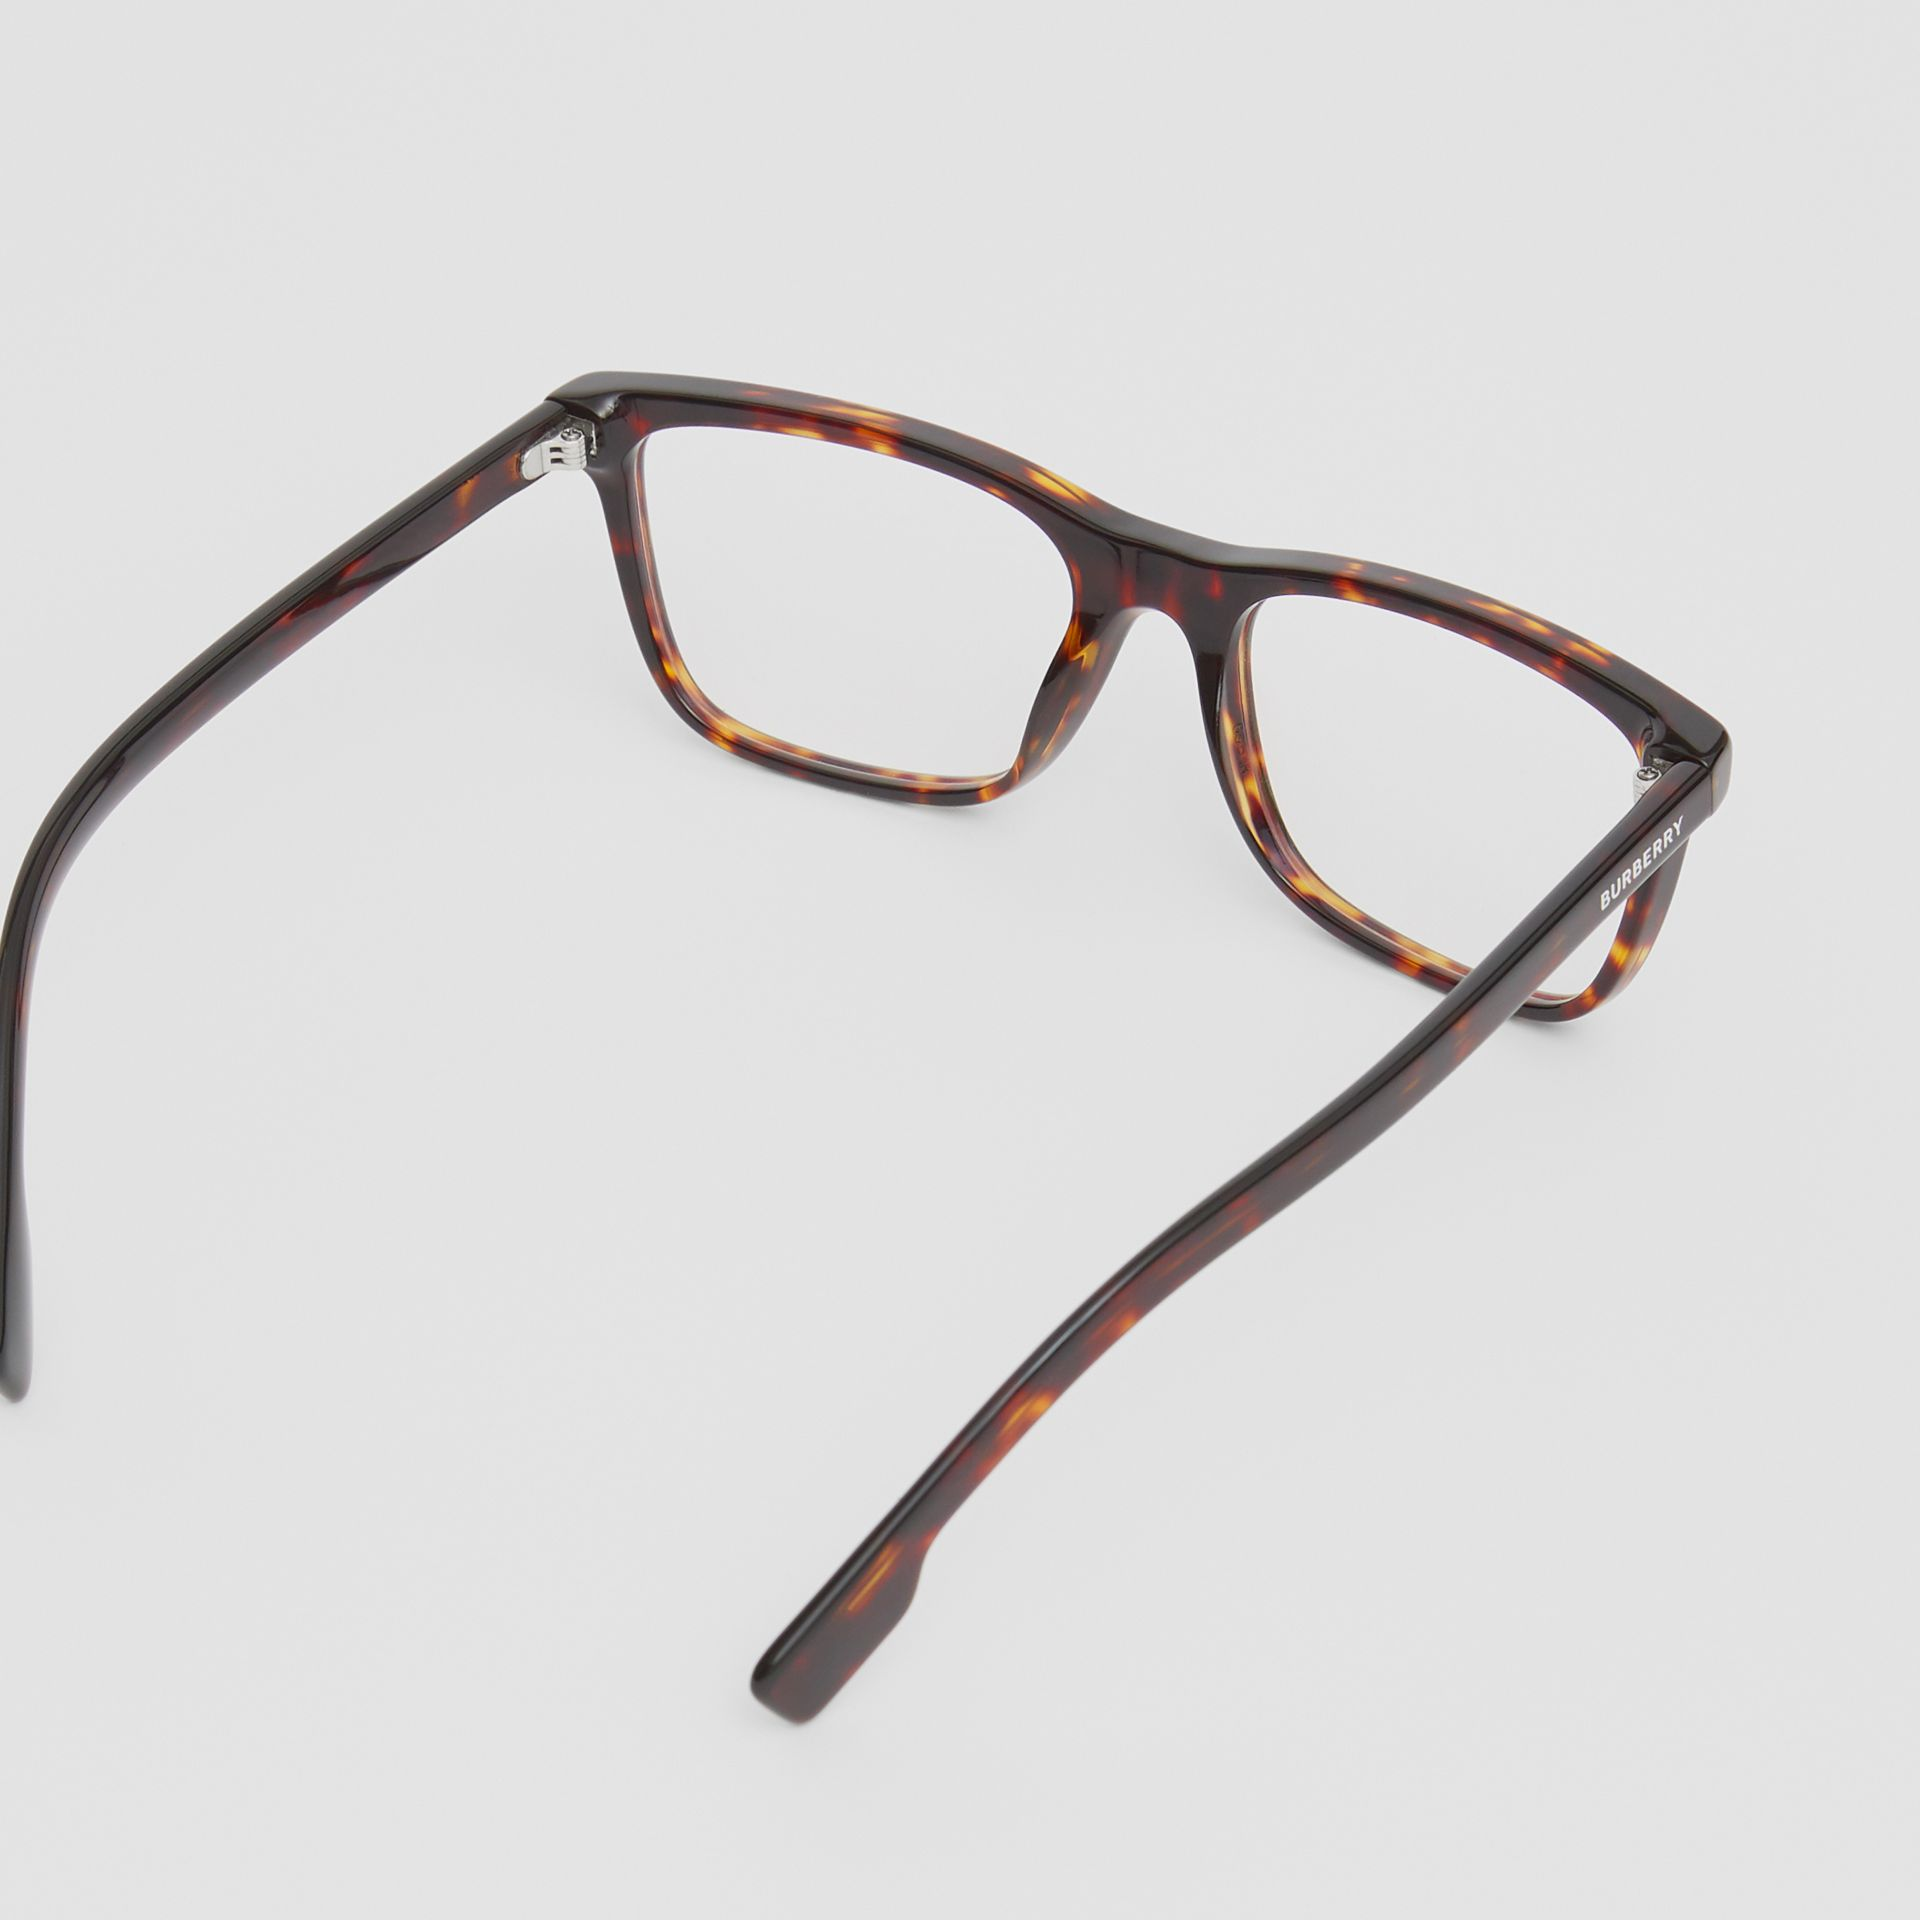 Rectangular Optical Frames in Tortoiseshell - Men | Burberry Canada - gallery image 4